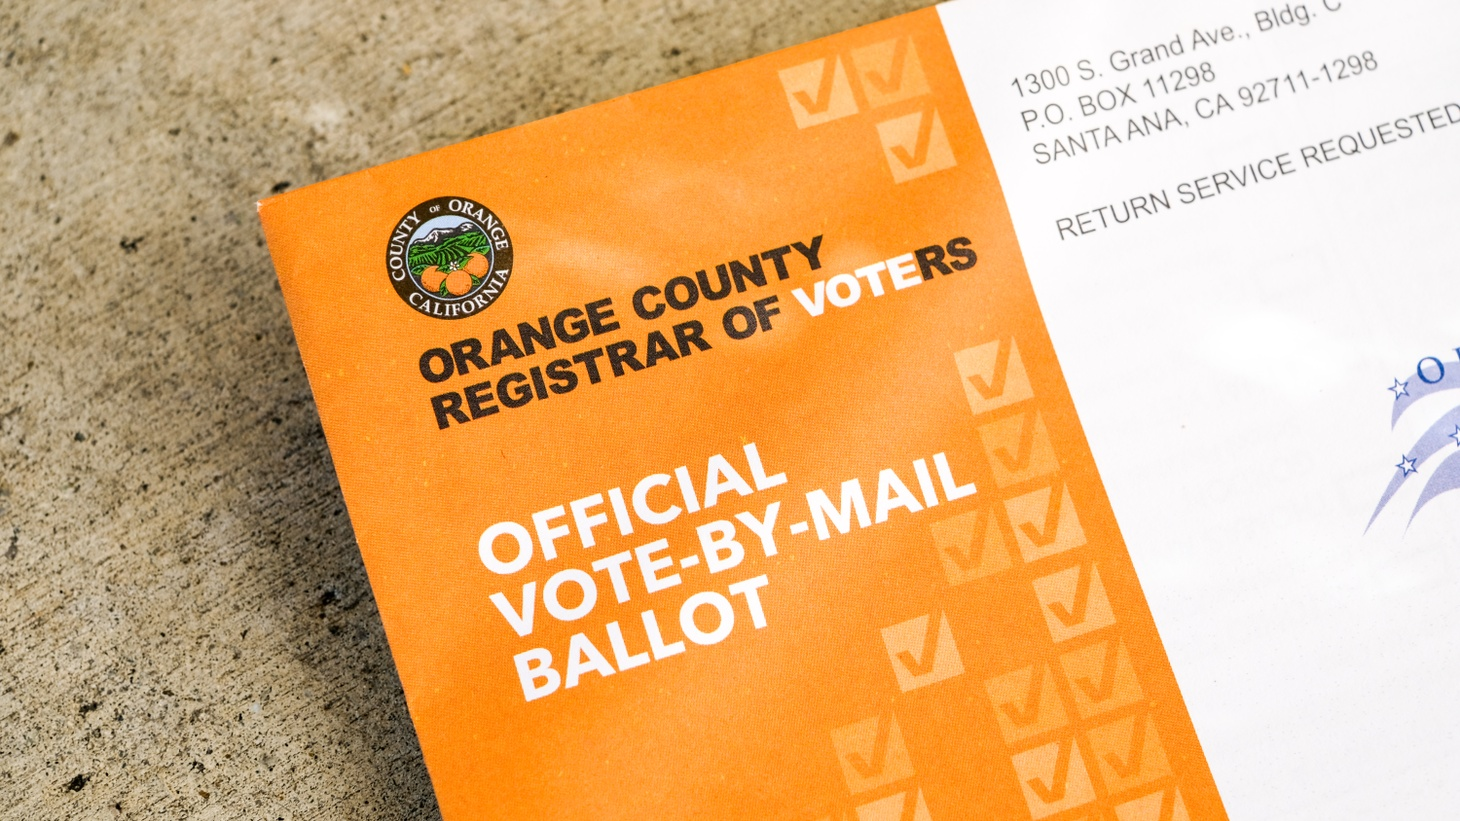 OC voters will decide whether Republican incumbent Andrew Do or Democratic challenger Sergio Contreras will win the seat on the OC Board of Supervisors for District 1.